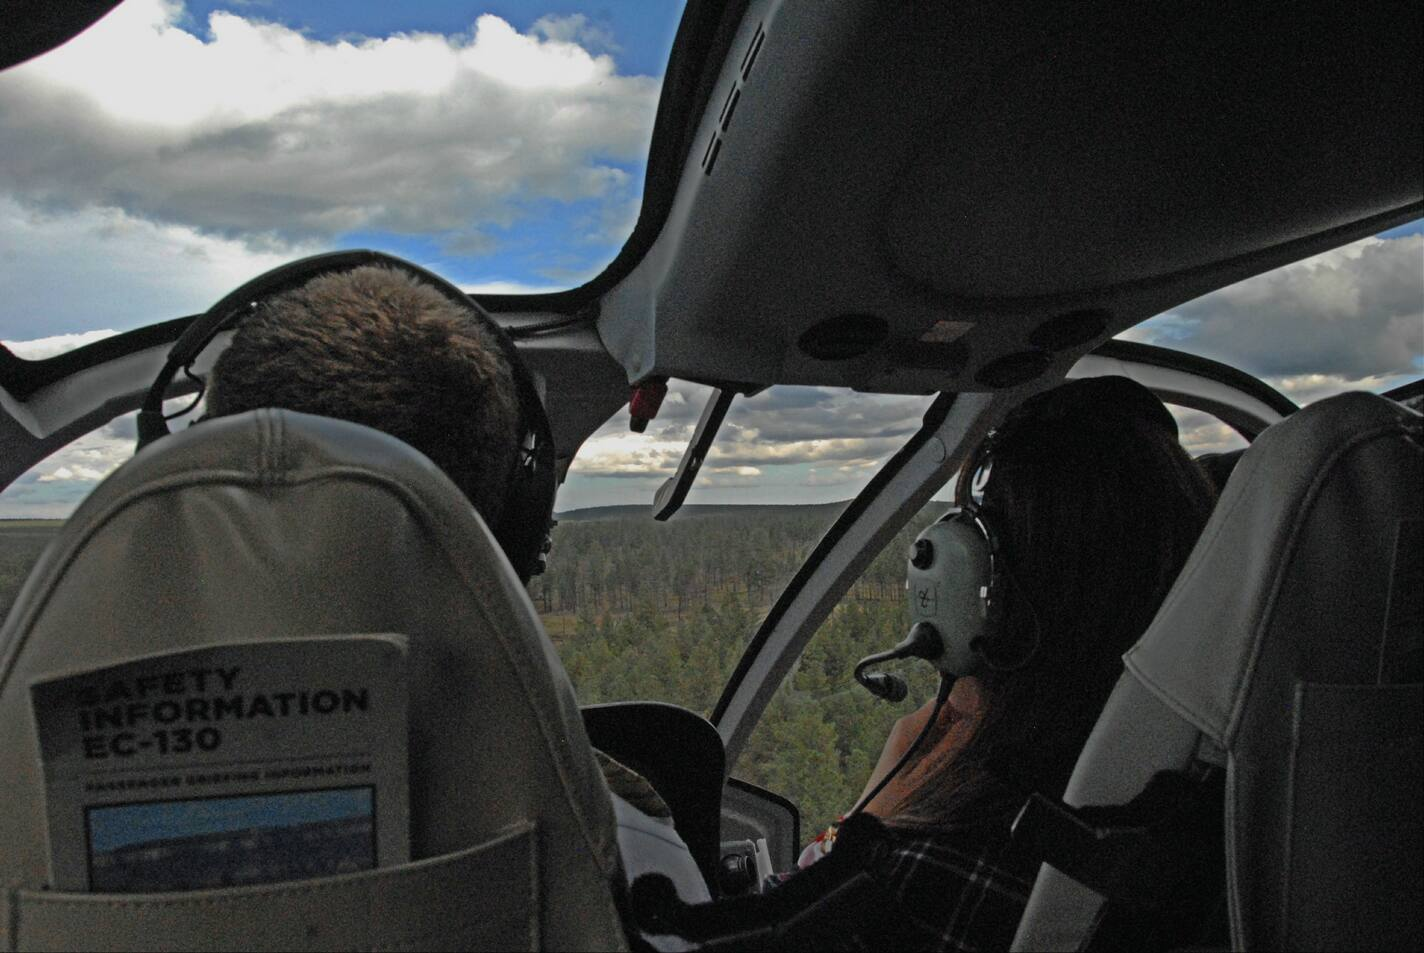 Our Helicopter Tour